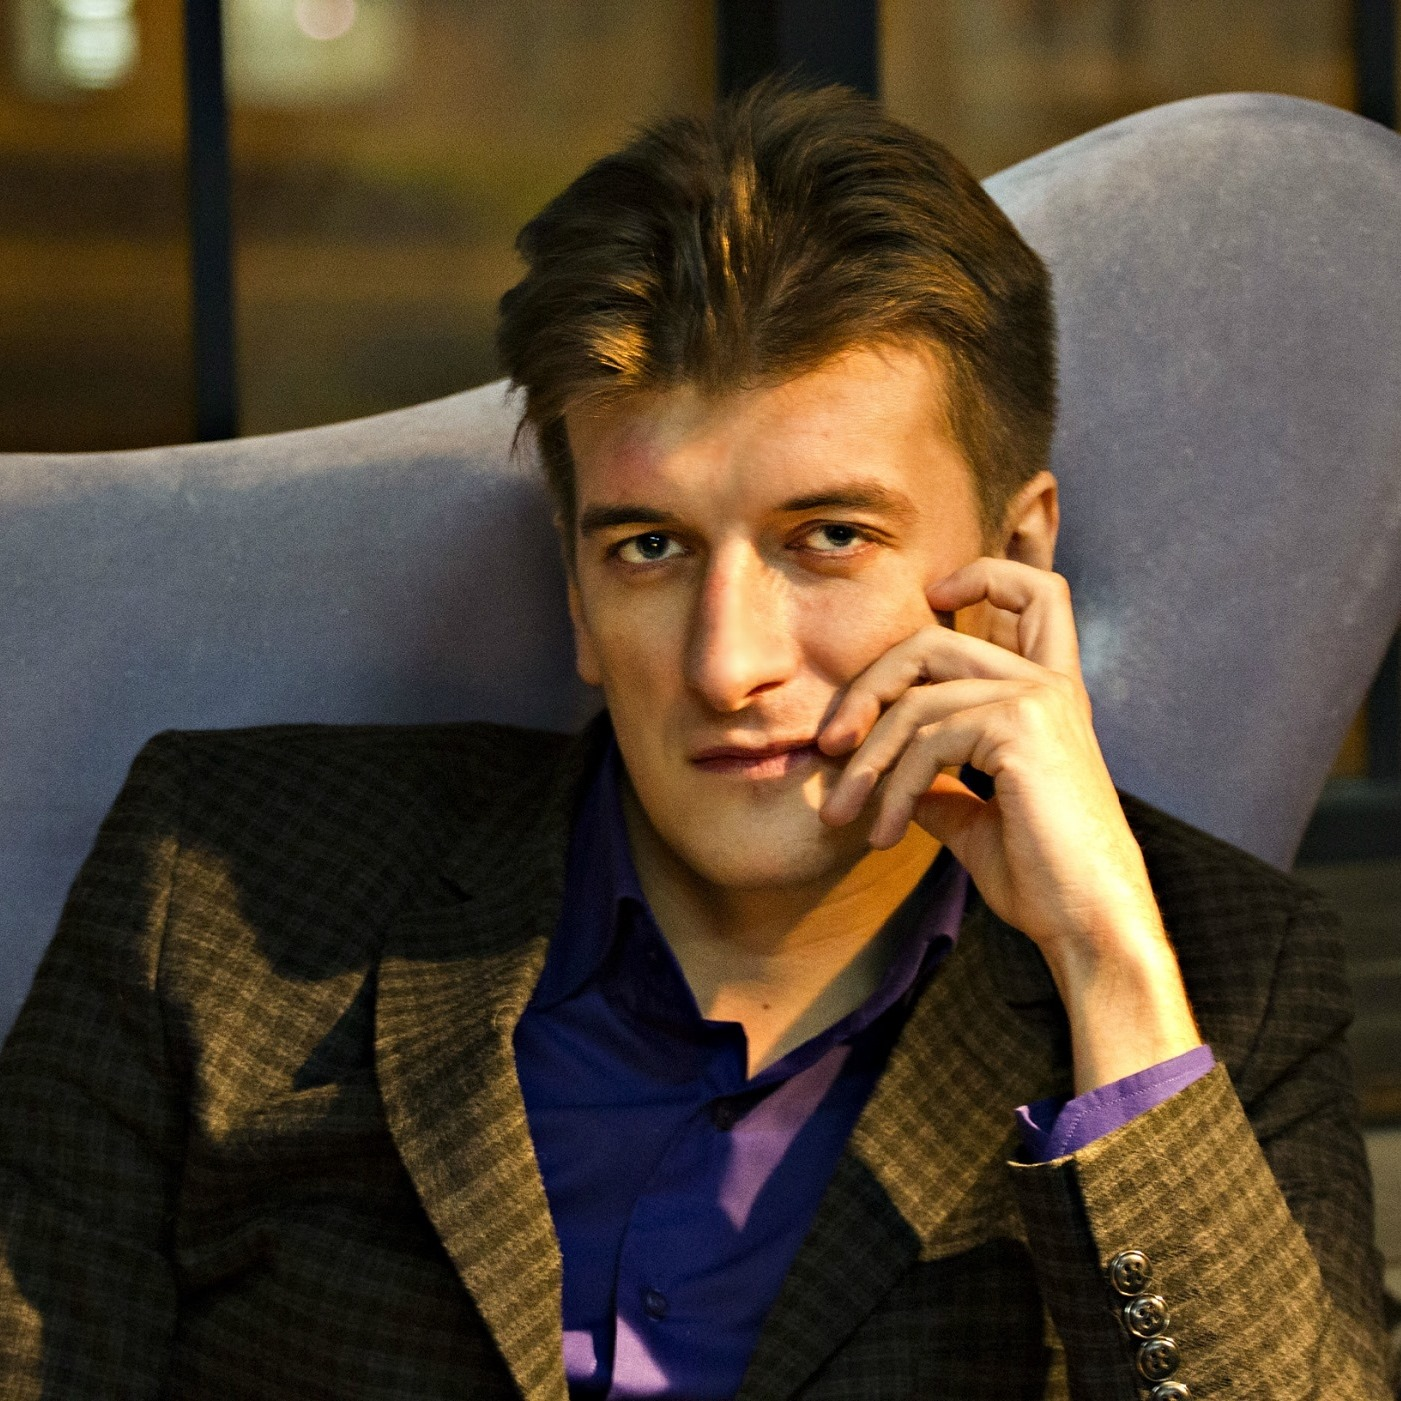 Russian journalist Maxim Borodin dies after mysterious fall